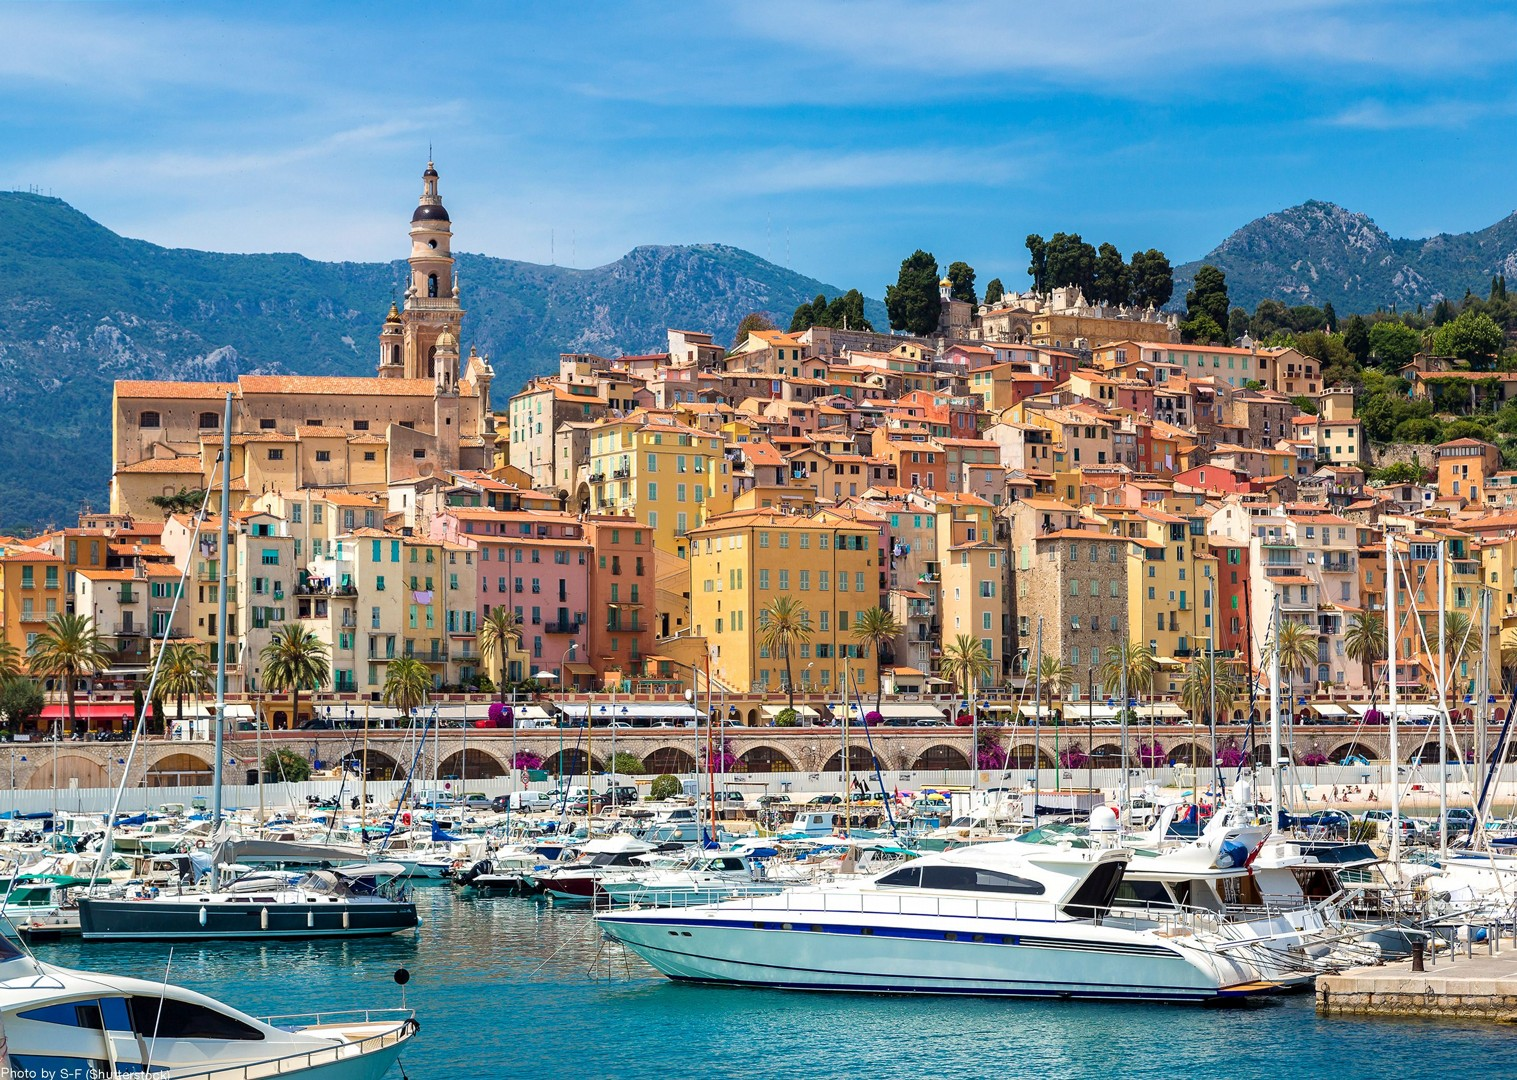 provence-france-harbour-cycling-road-tour.jpg - NEW! France - Provence - Alpes Maritimes - Road Cycling